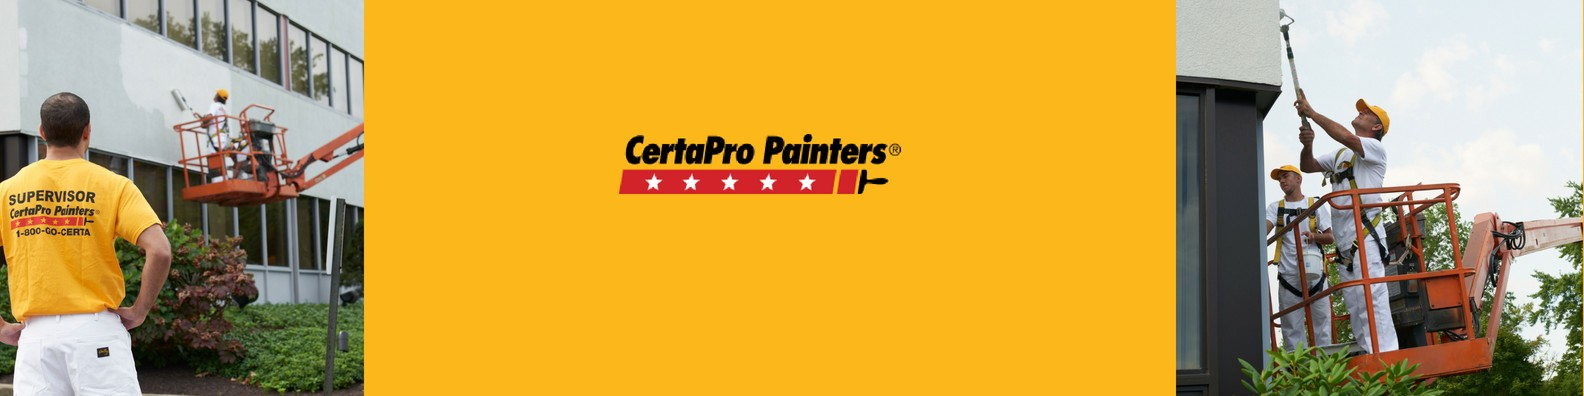 CertaPro Painters of Nashville and Middle Tennessee | LinkedIn